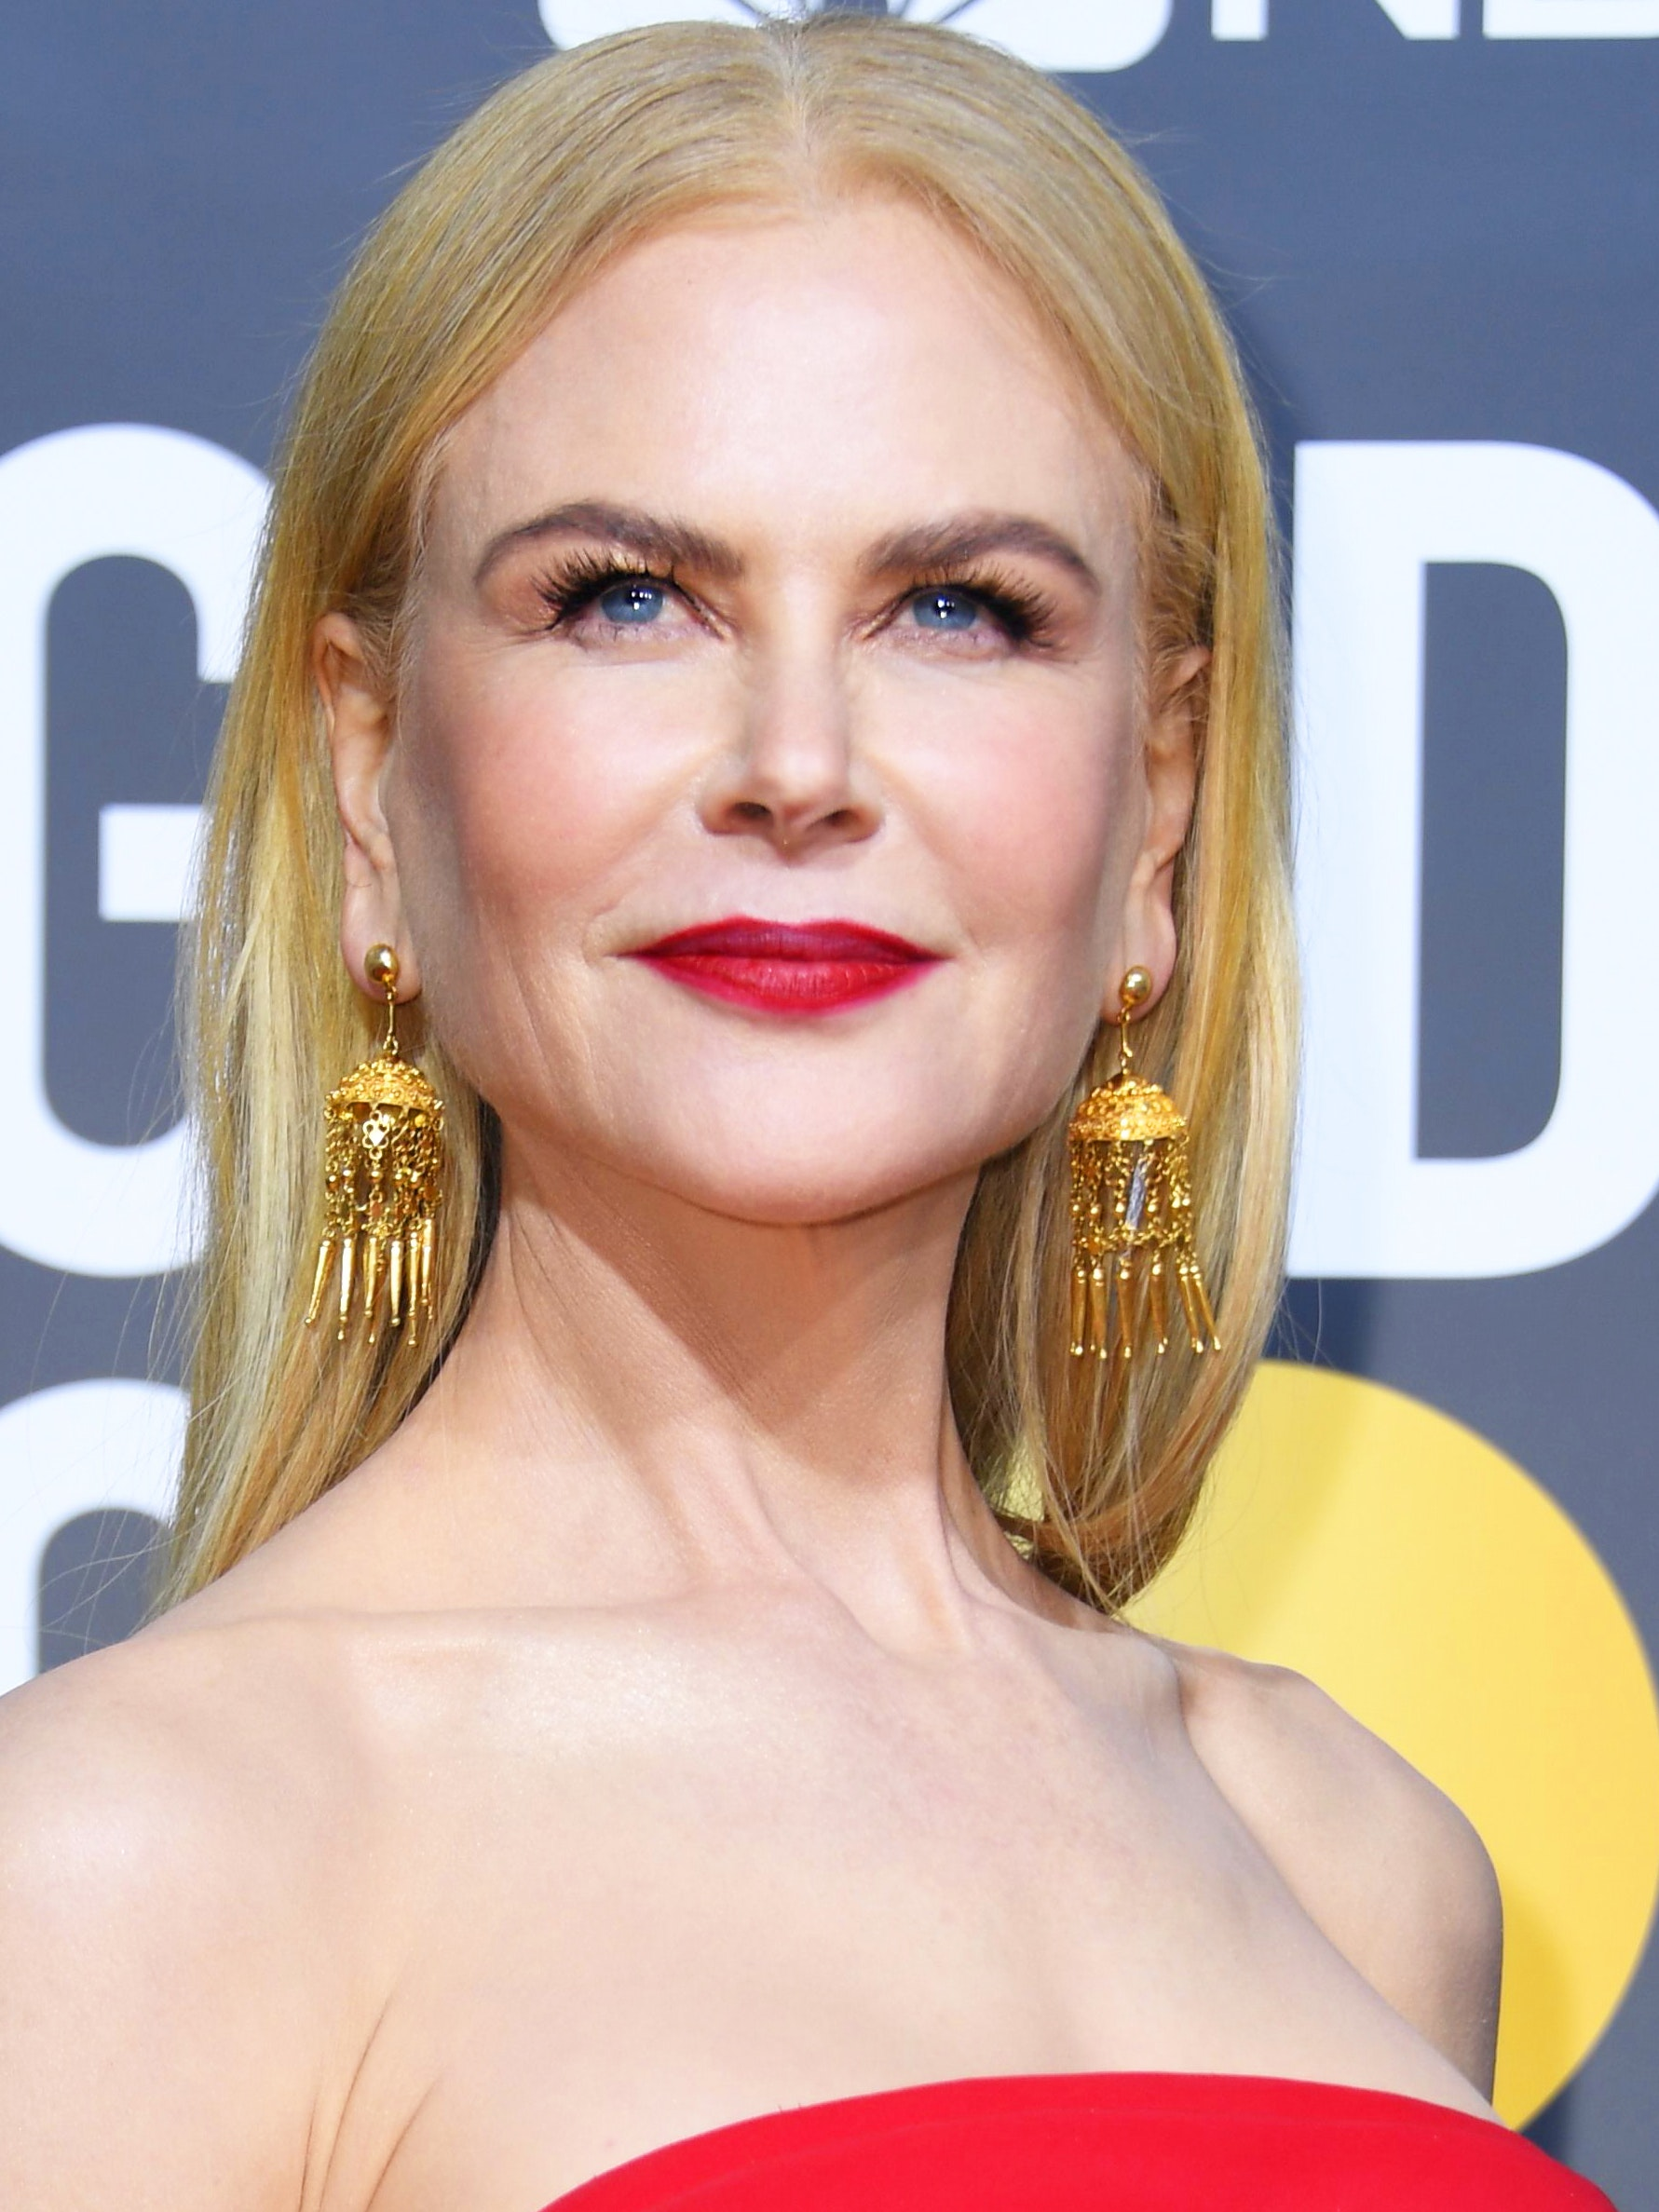 Nicole Kidman Golden Globes 2020 beauty hair look